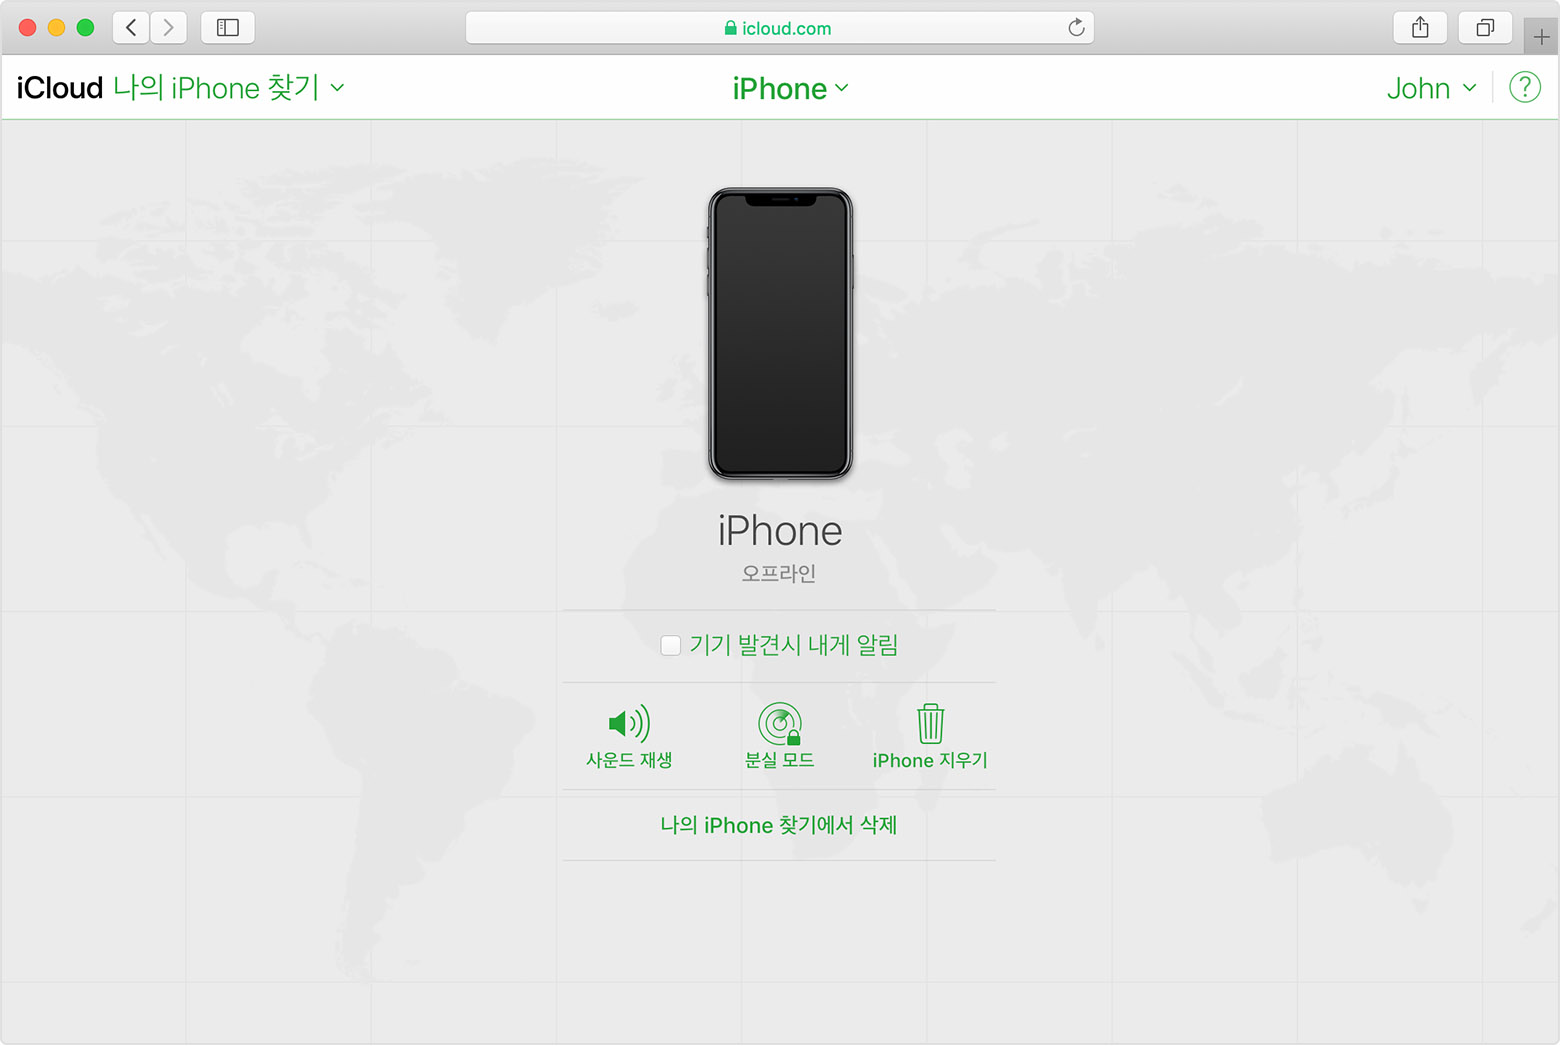 John의 iPhone이 표시된 iCloud 나의 iPhone 찾기